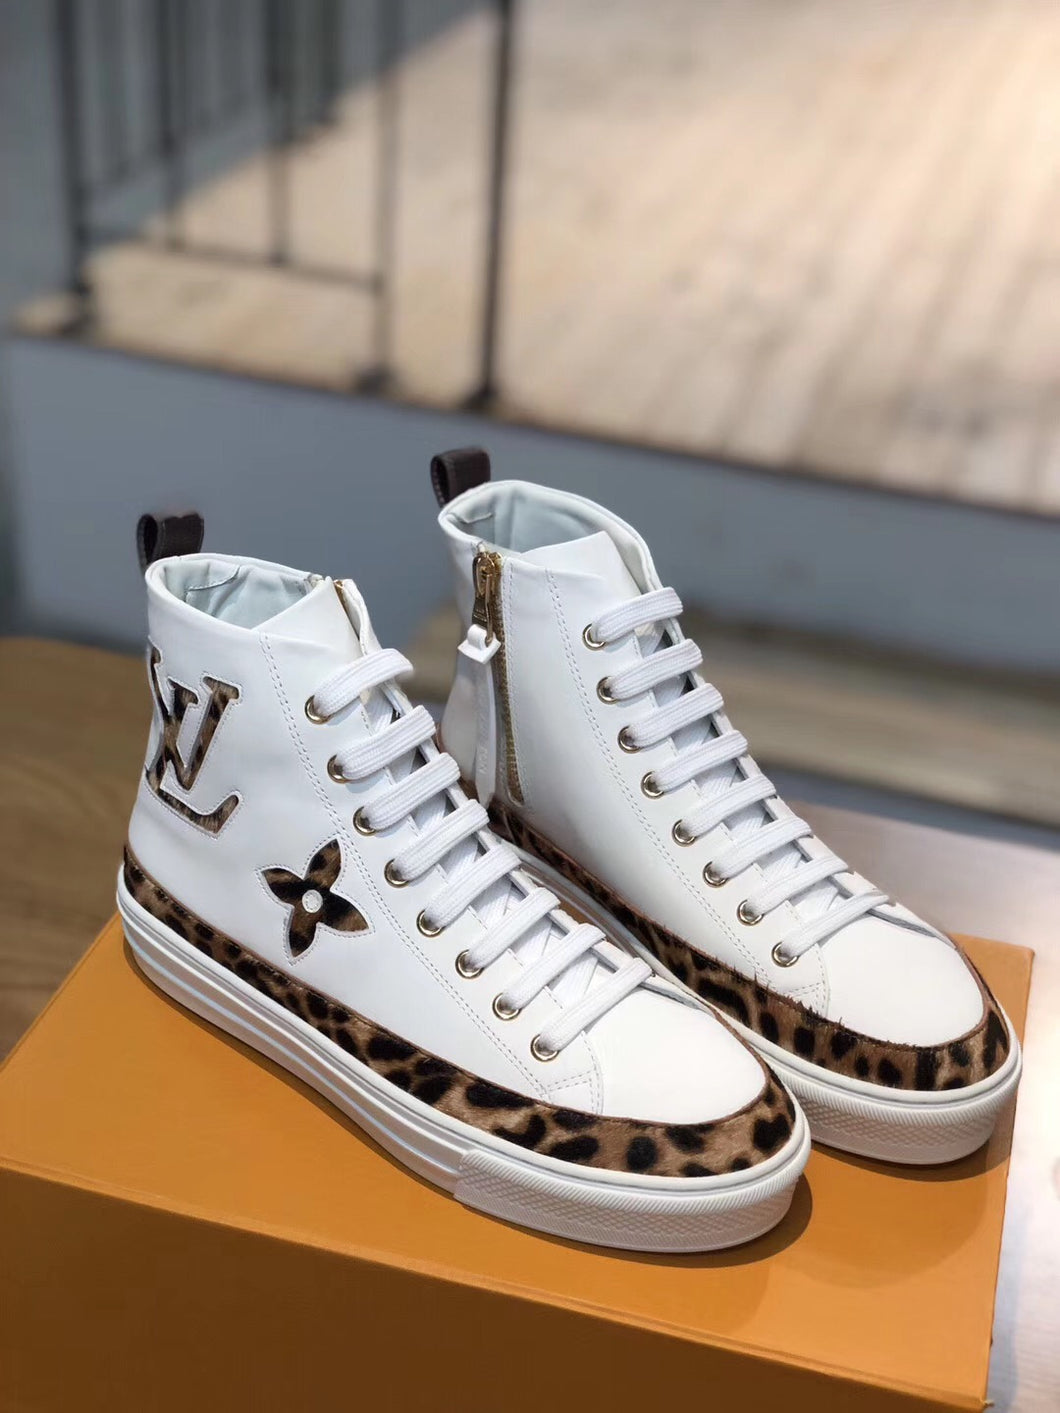 LOUIS VUITTON STELLAR - Hustla Boutique